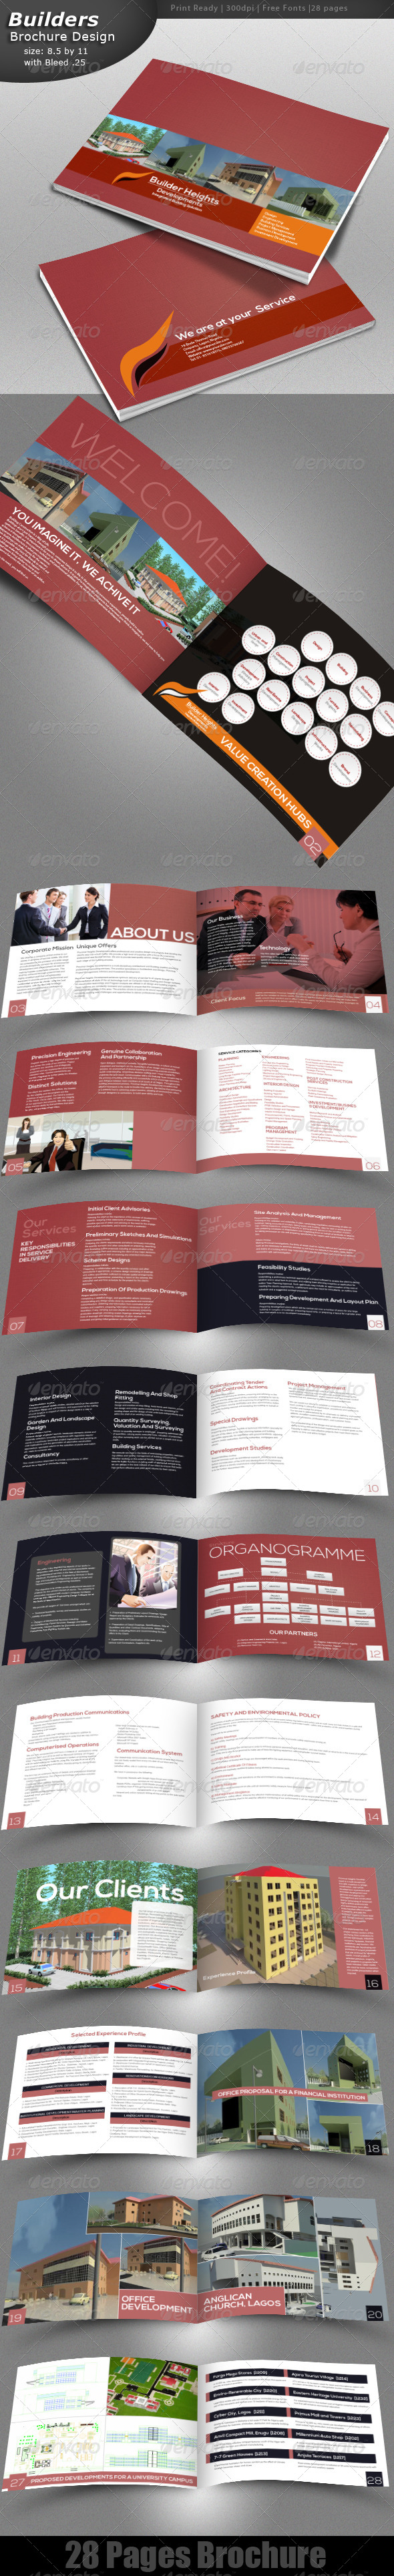 Construction Brochure - Brochures Print Templates